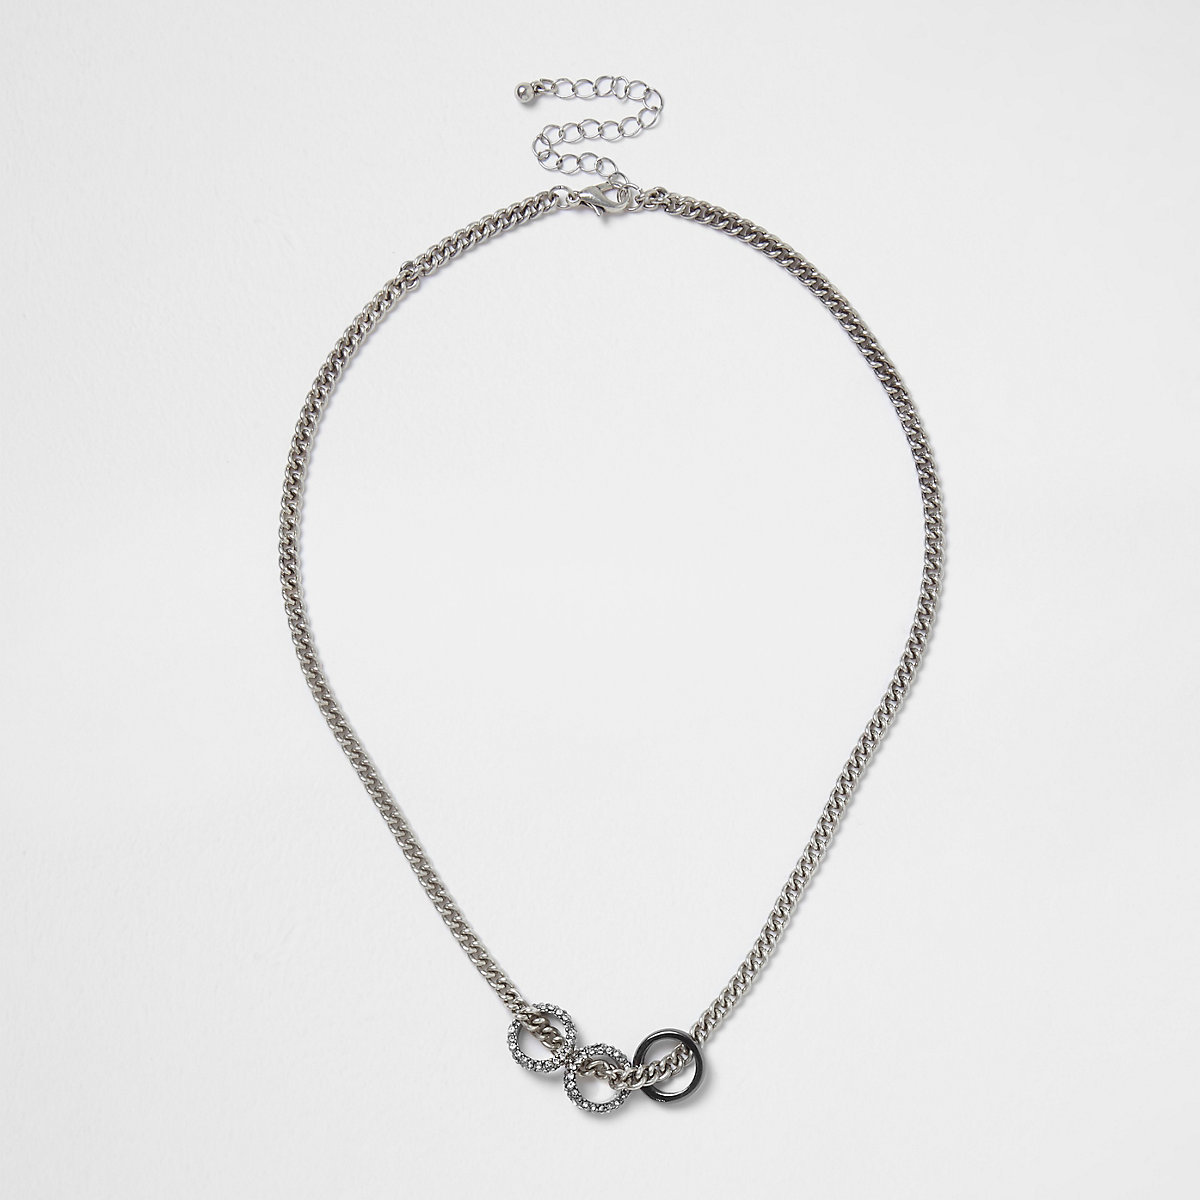 Silver tone three ring chain necklace